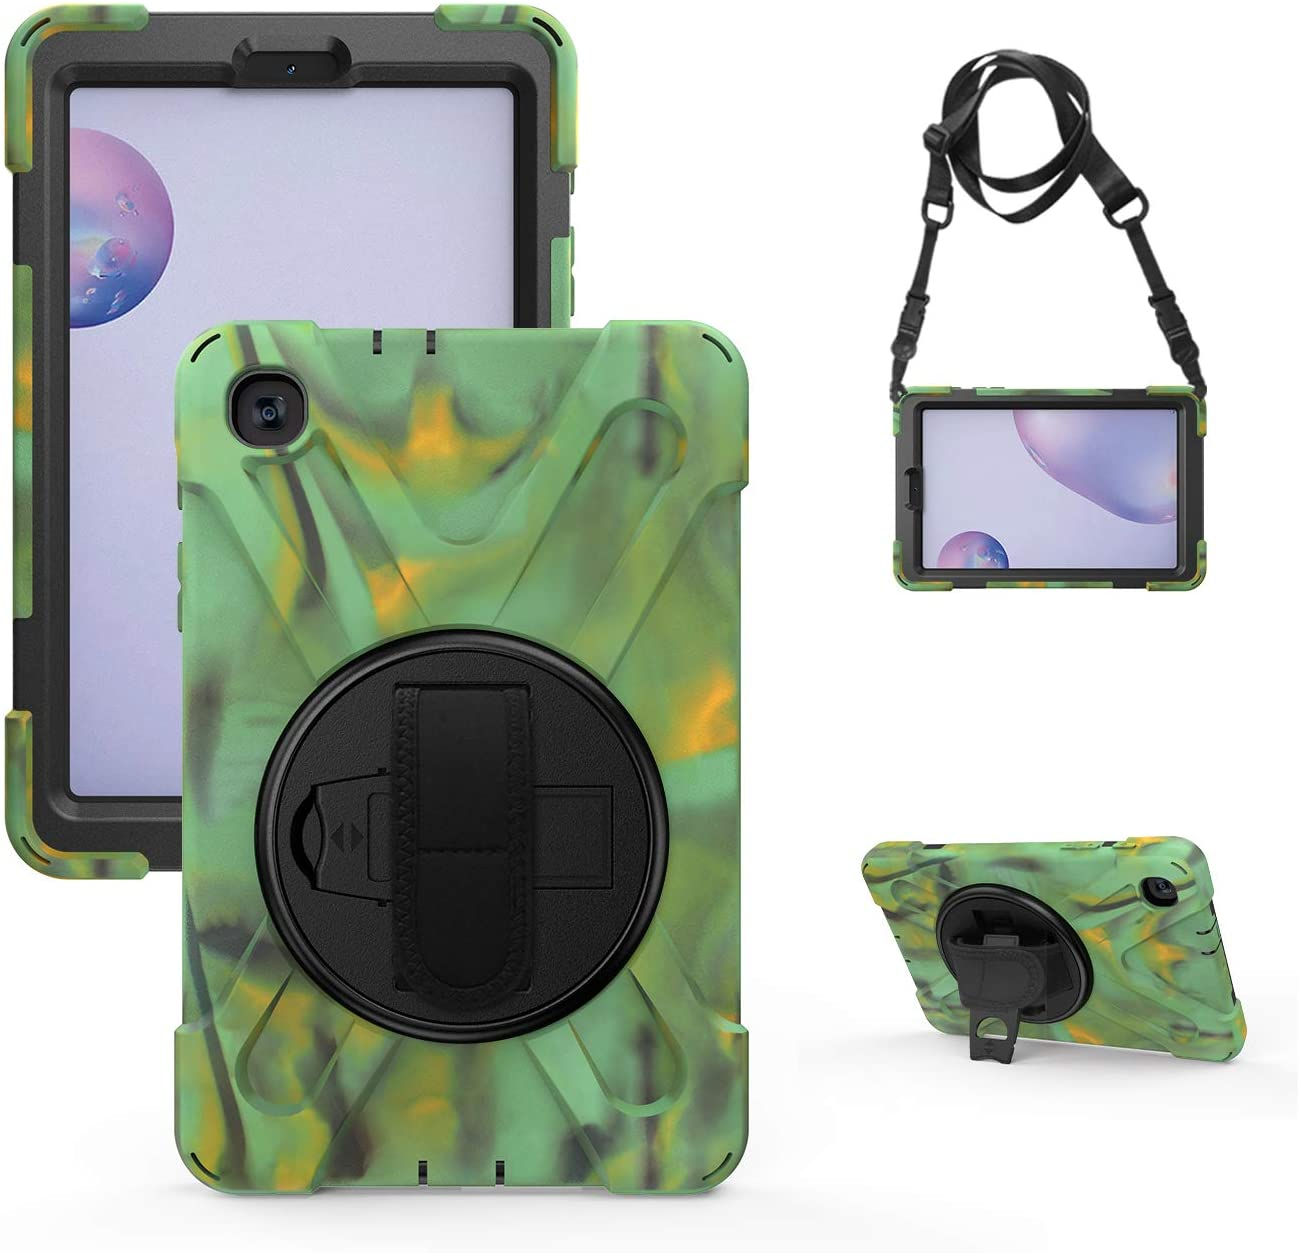 Rosestar Rugged Case for Samsung Galaxy Tab A 8.4 2020 Kids Friendly Shockproof Heavy Duty Protective 8.4-inch SM-T307 Cover with Rotatable Handle/Mount Stand/Adjustable Shoulder Strap